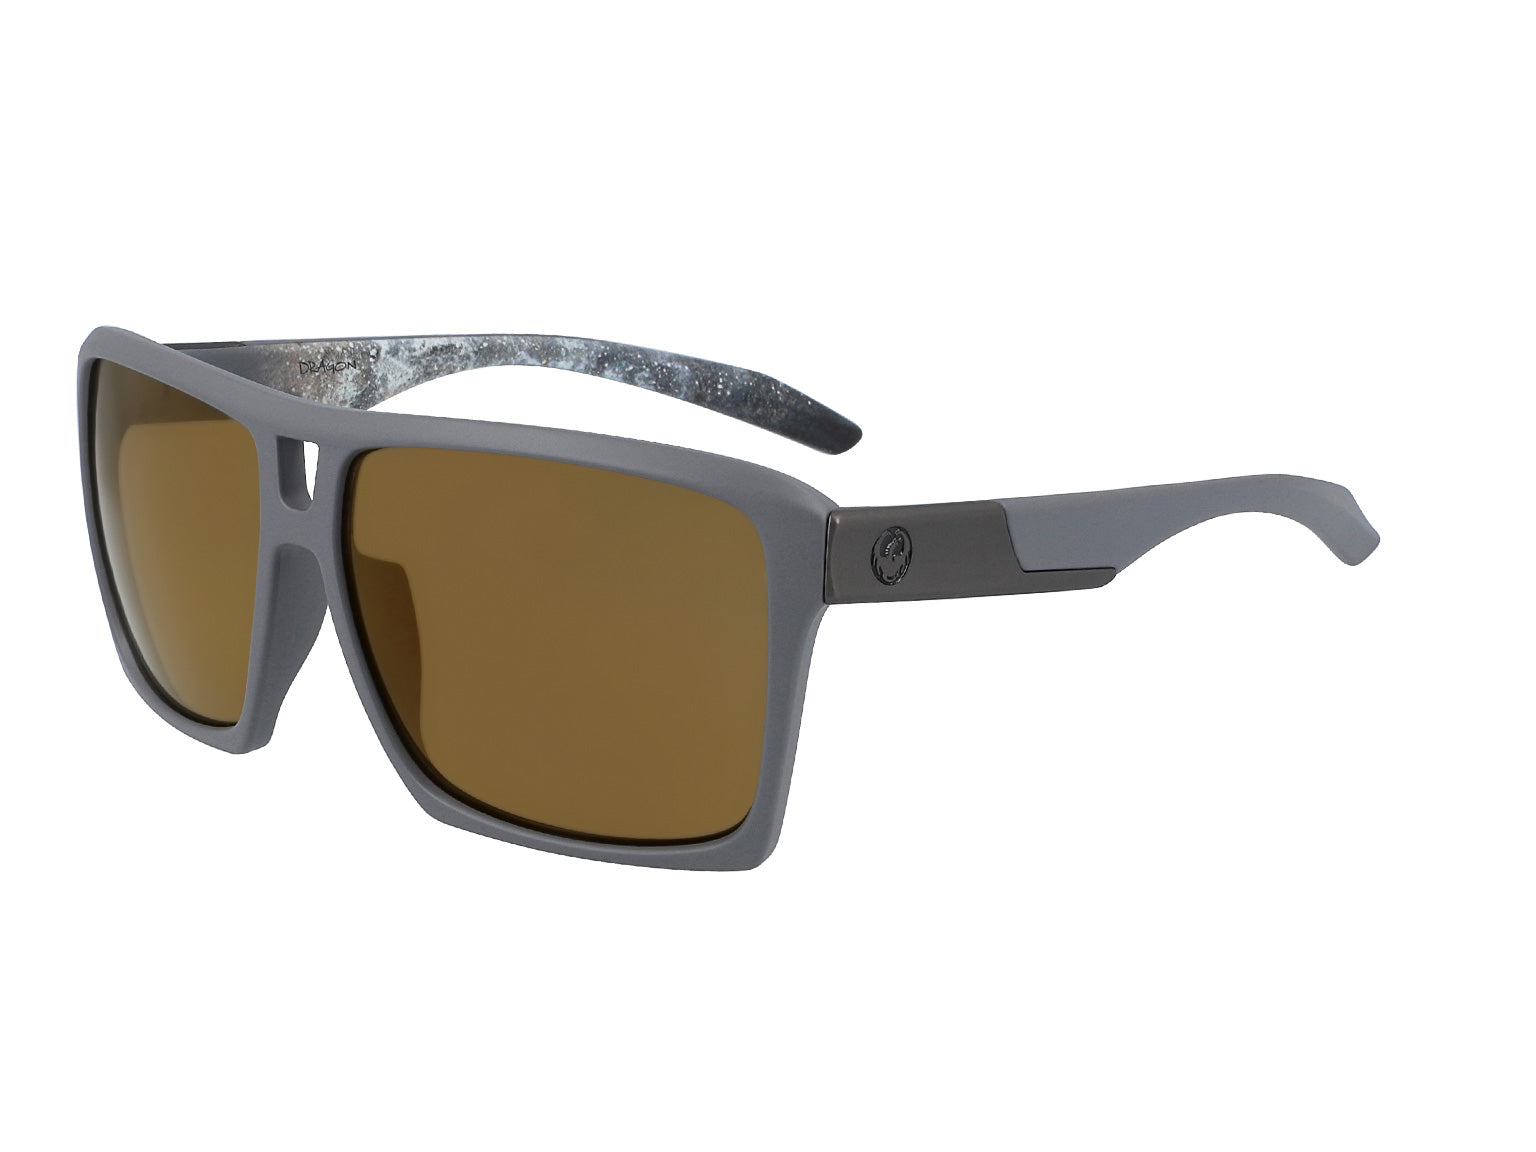 THE VERSE - Matte Grey/Galaxy ; with Lumalens Copper Ionized Lens